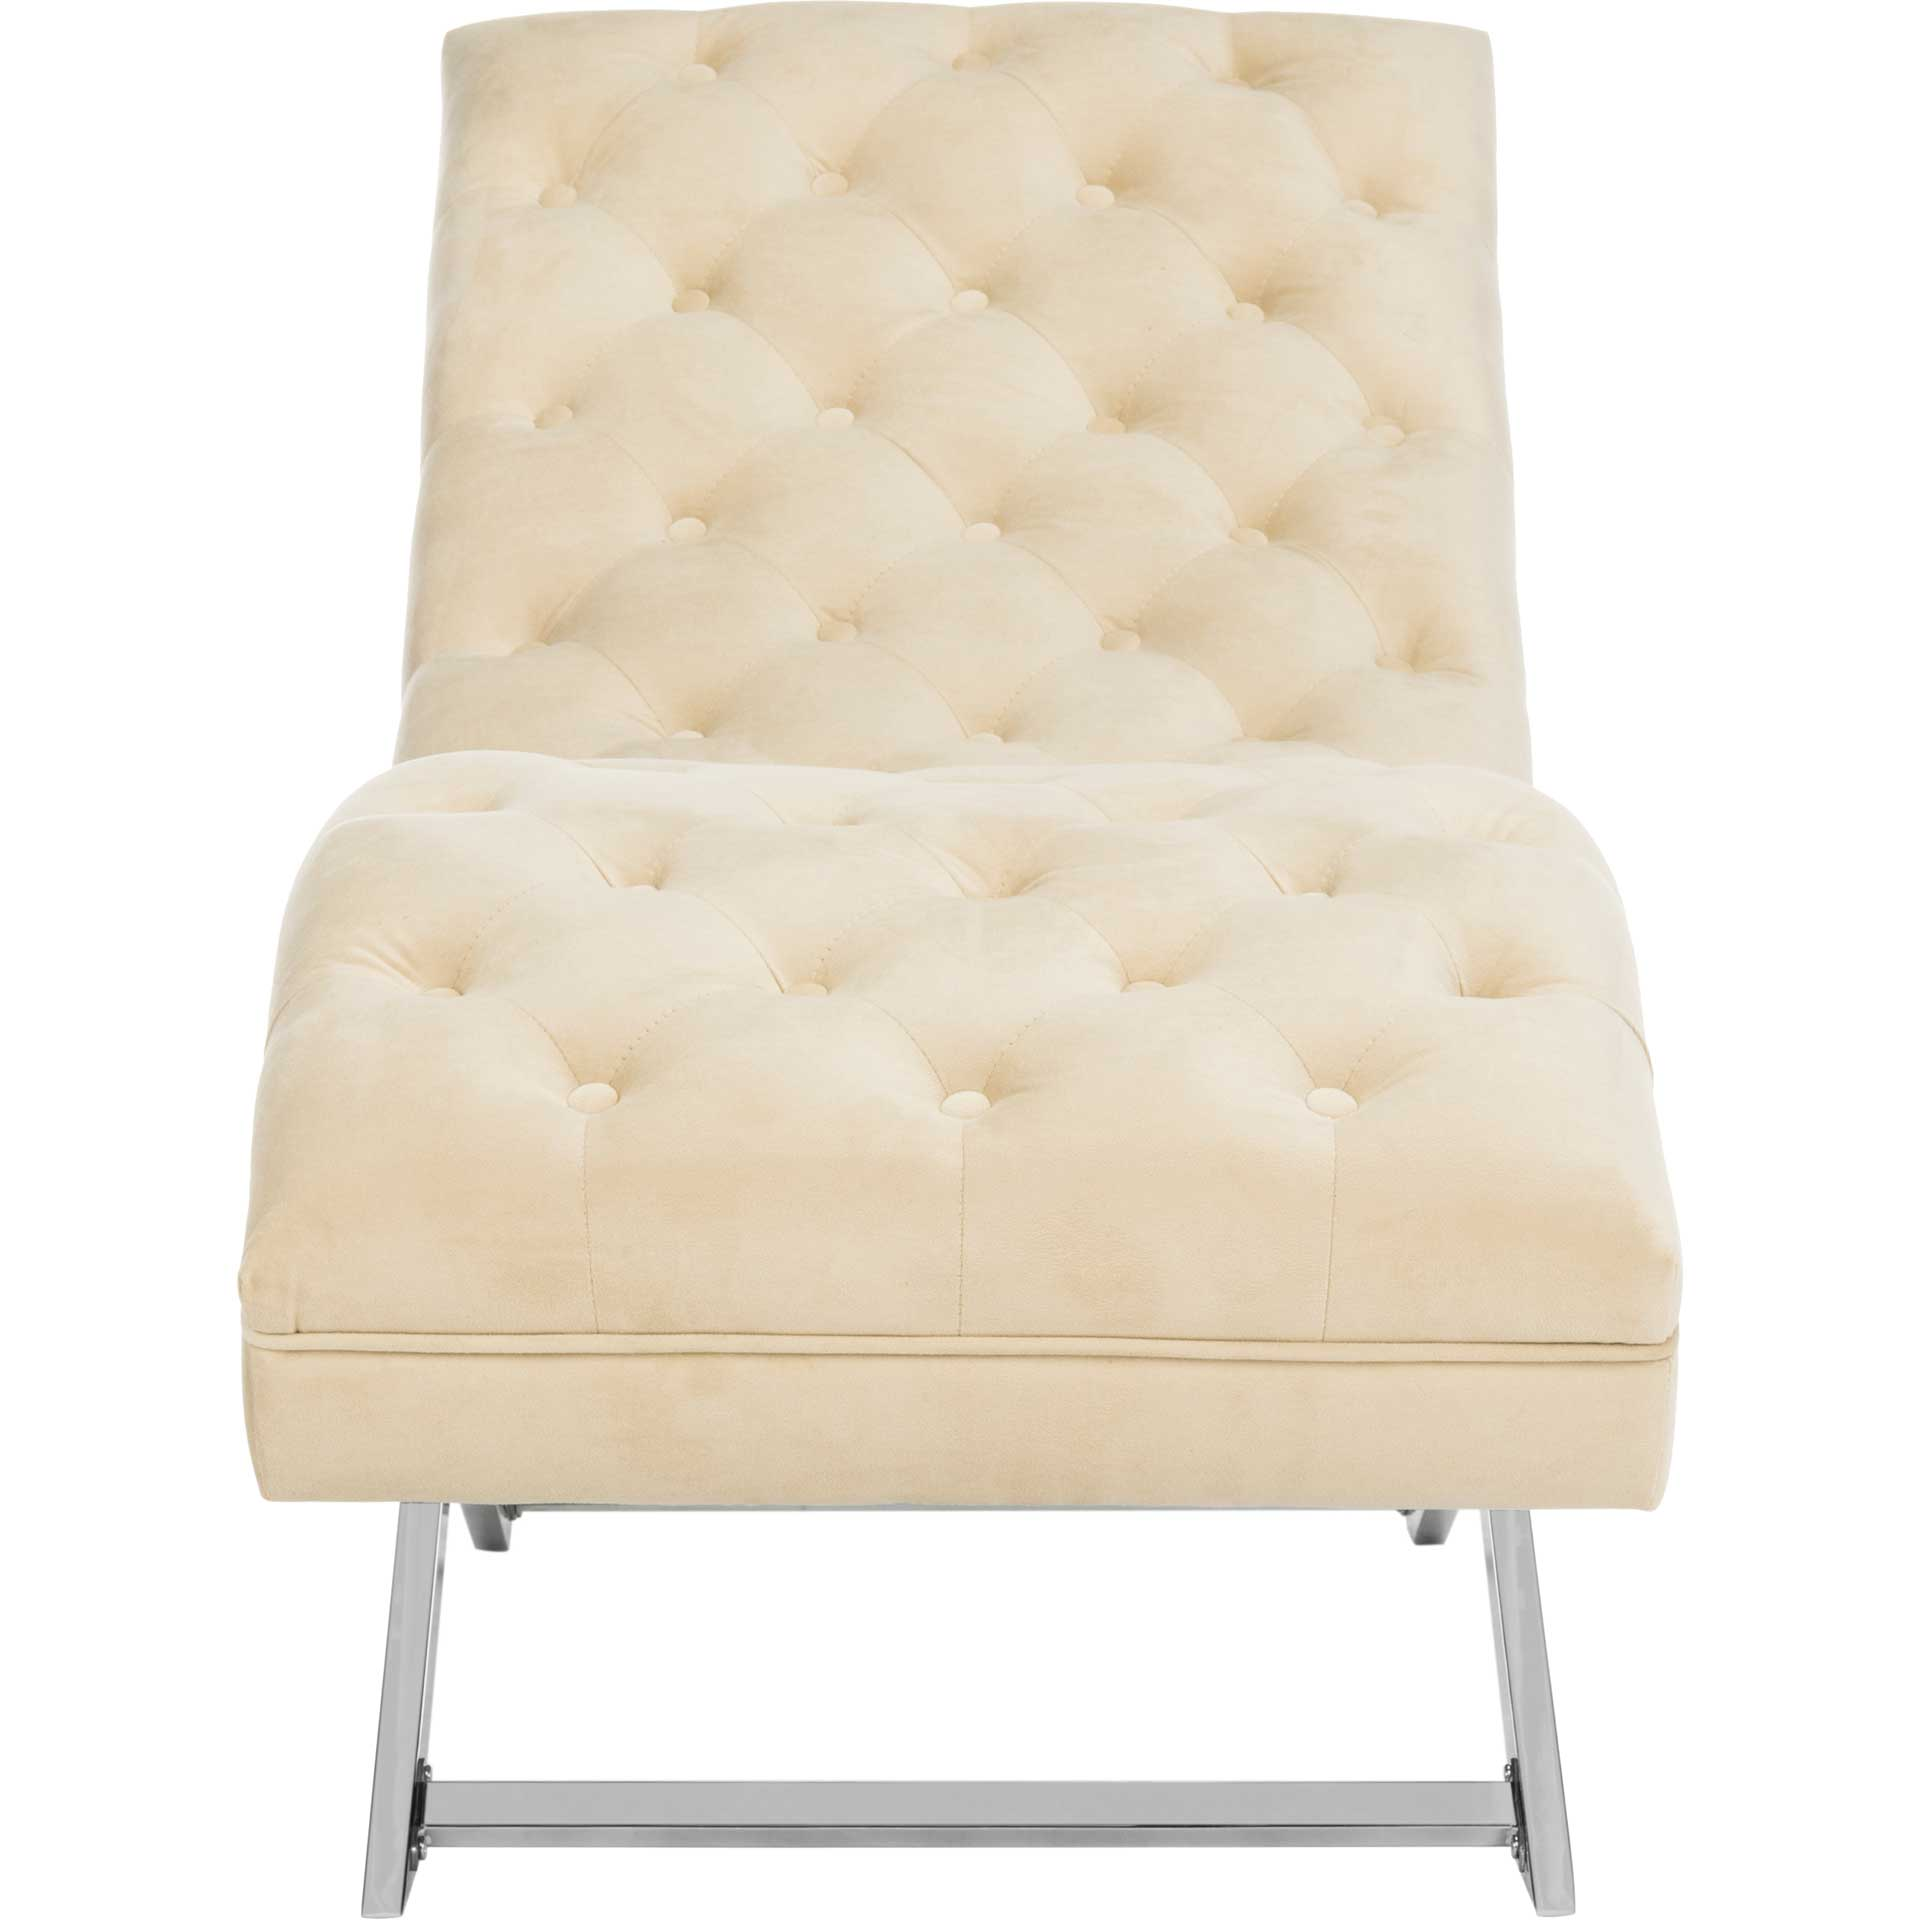 Morph Chaise With Headrest Pillow Beige